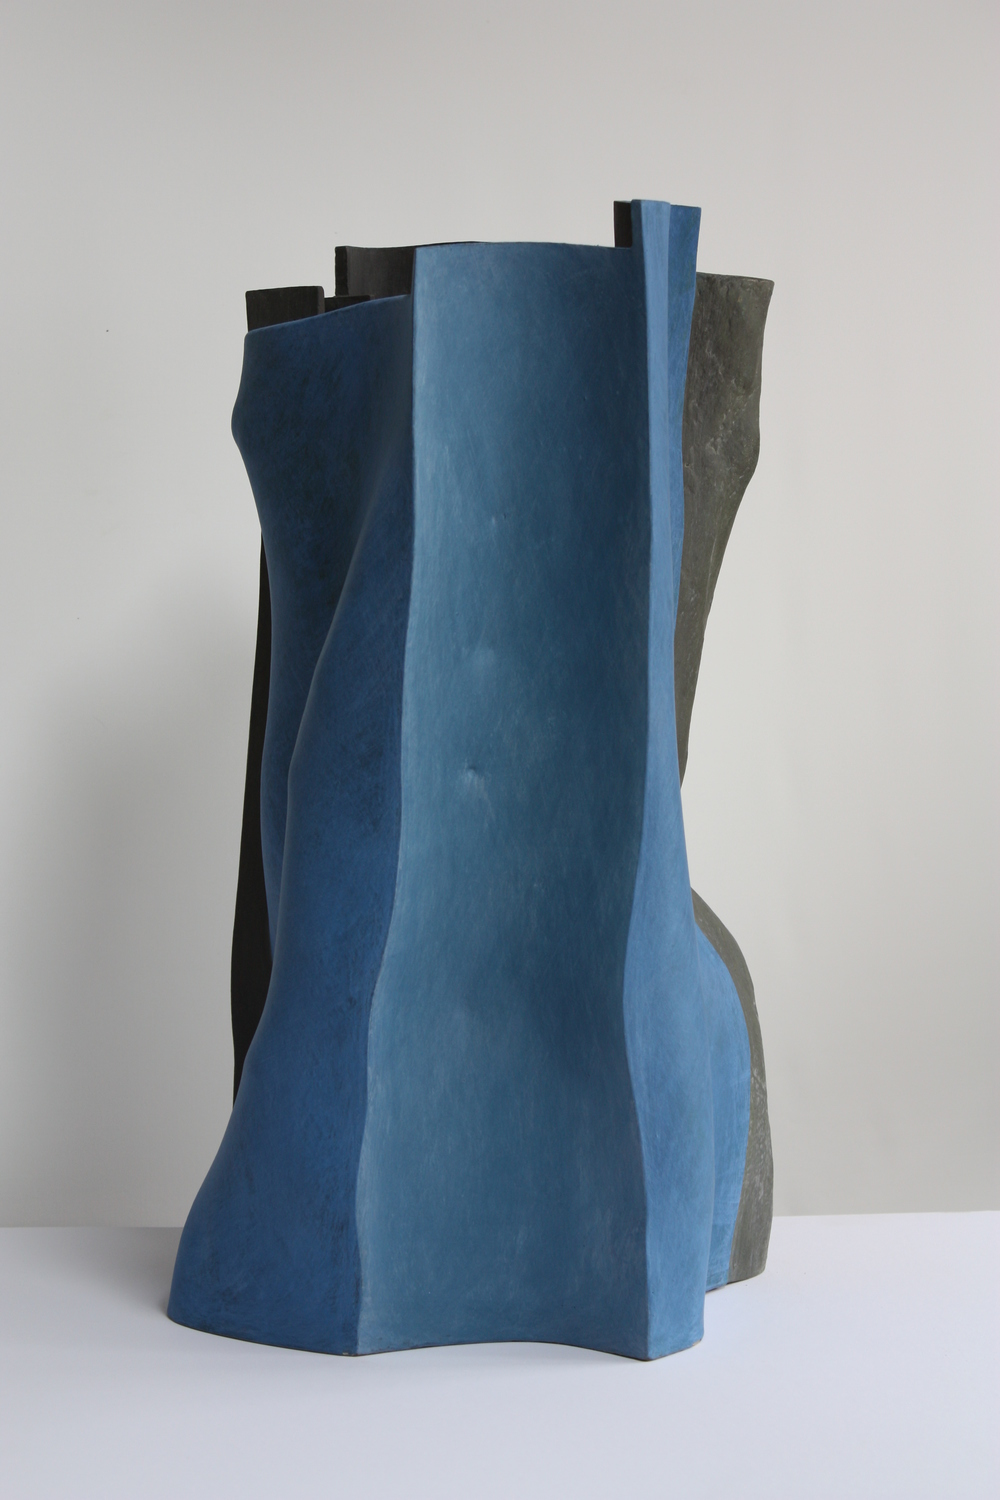 Body and soul, 2012, 60cm high